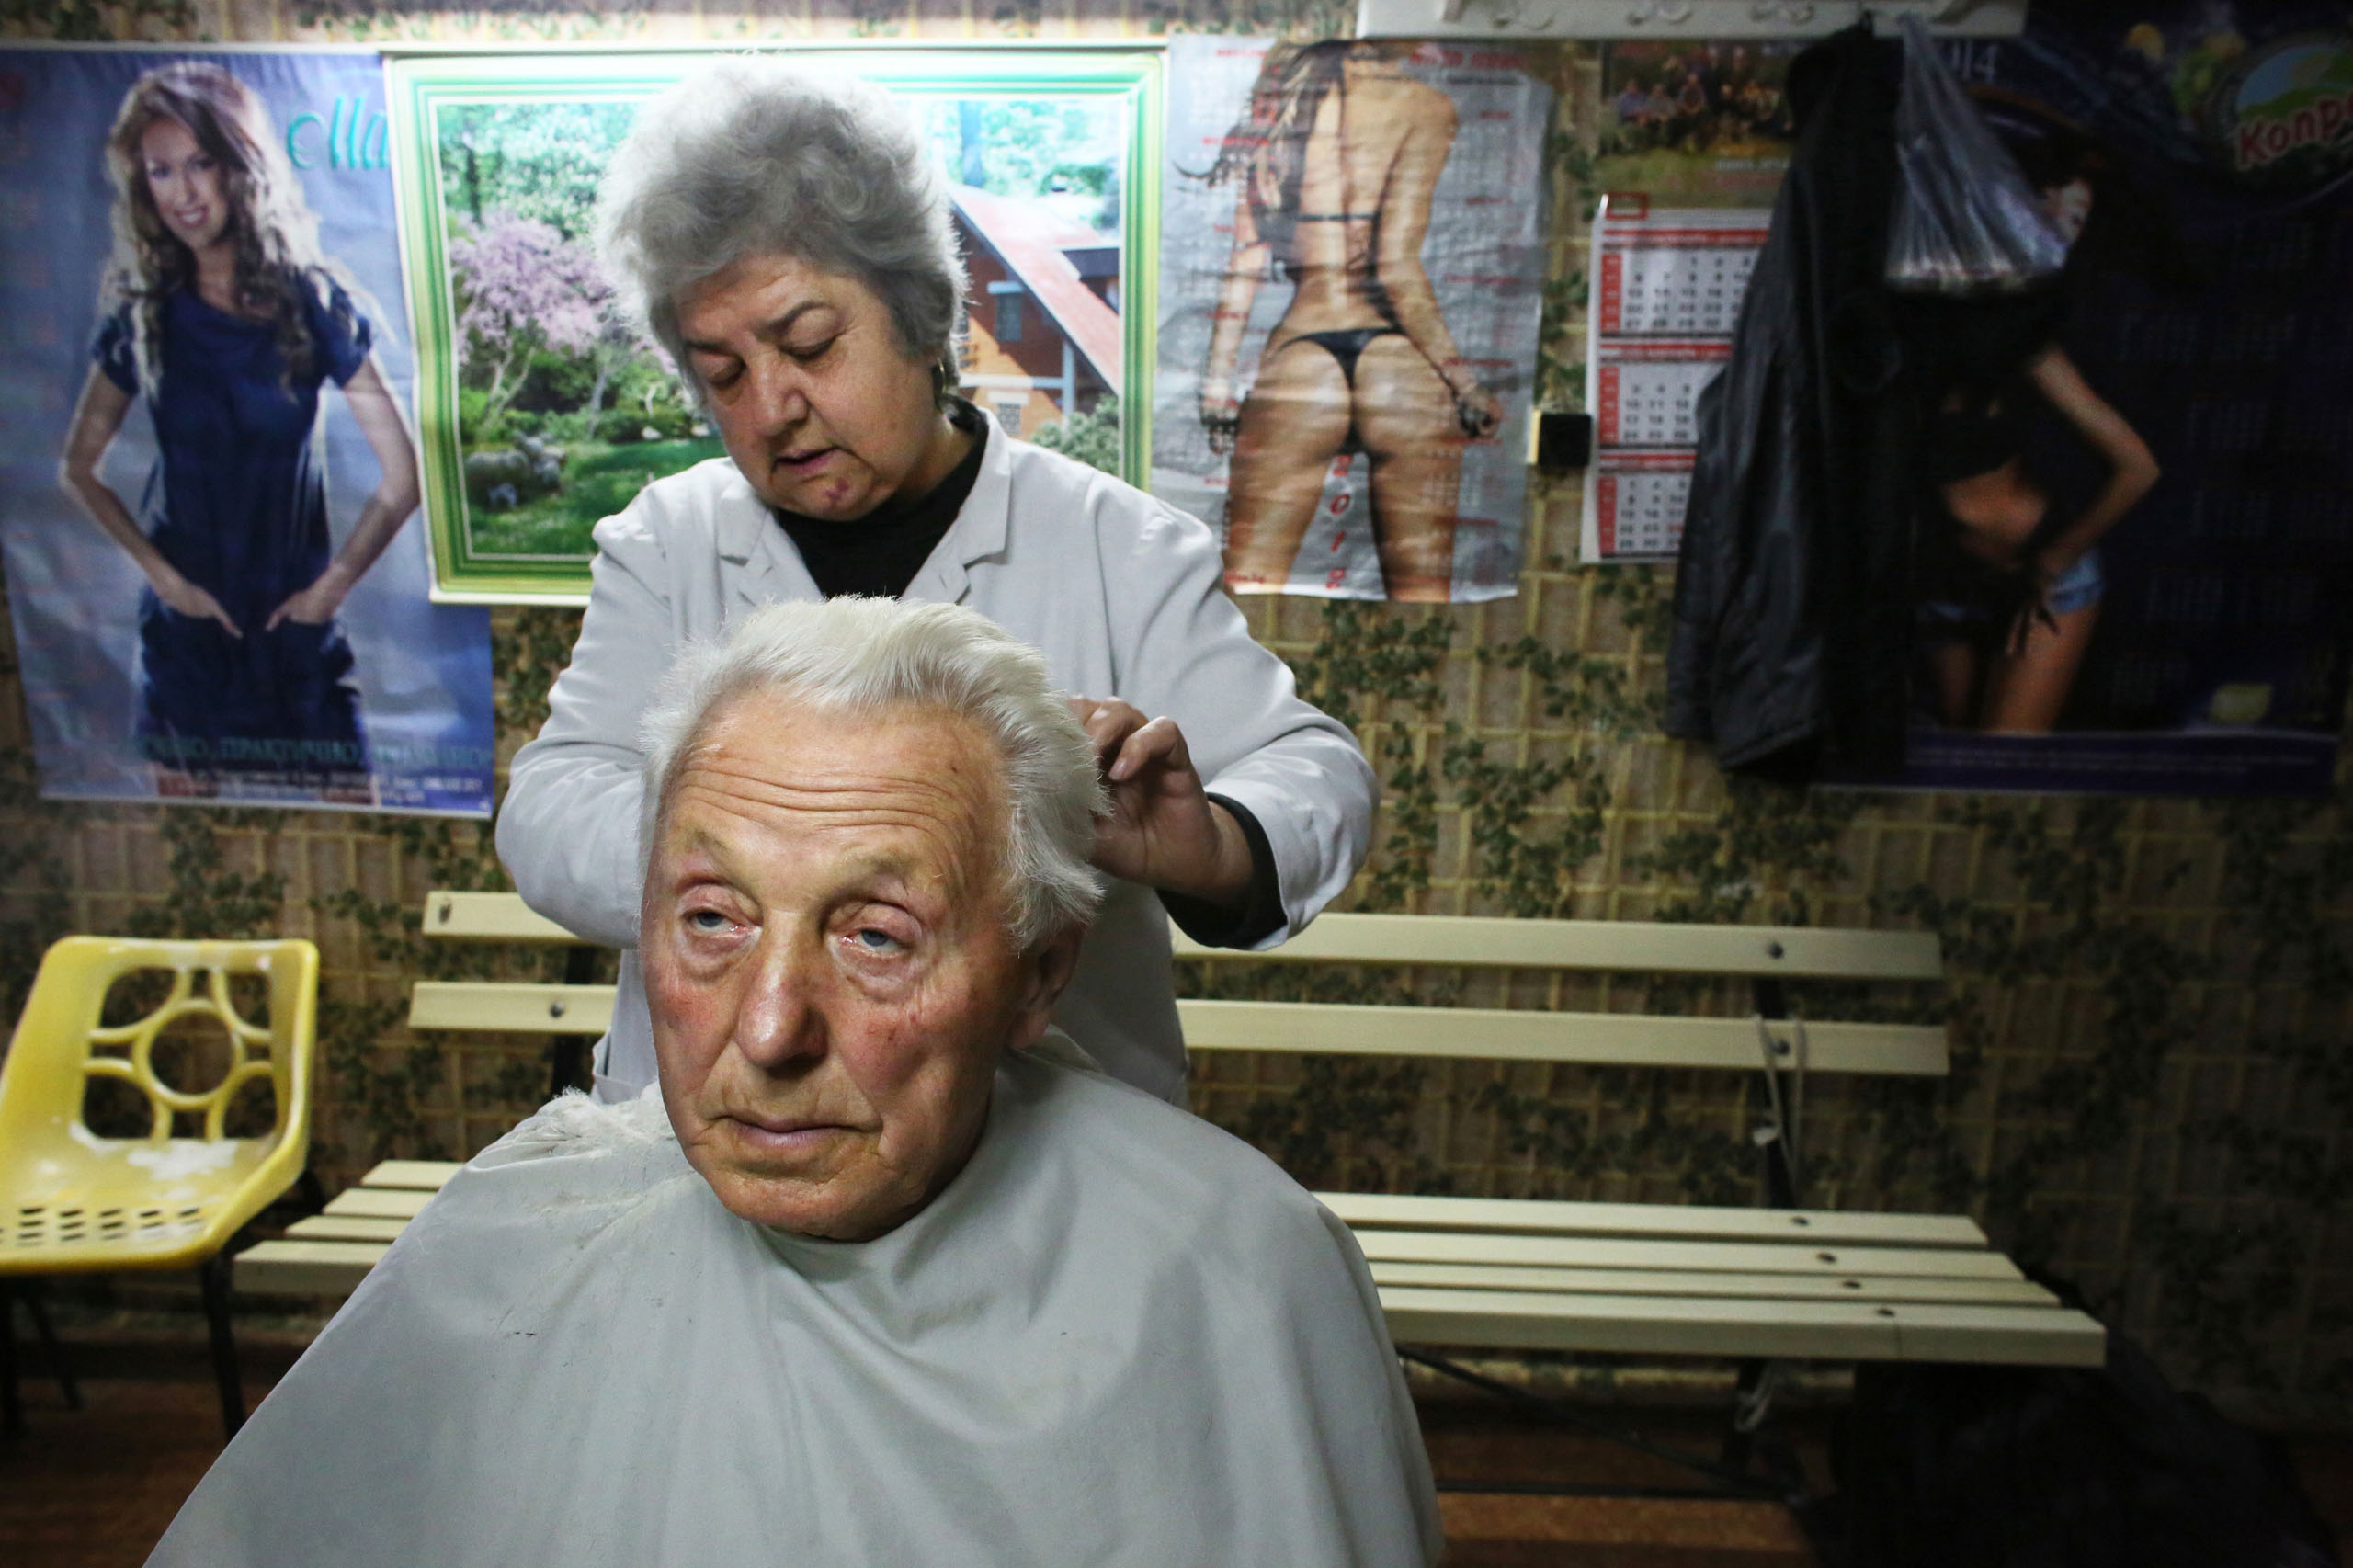 Hairdresser Pavlinka Paskova, 59, cuts the hair of Stanko Petrov Vulchev, 80, in Vidin, Oct. 30, 2014. Paskova says she has very few customers in this town of waning population:  There's little hope of prosperity for the young here - they've all emigrated.